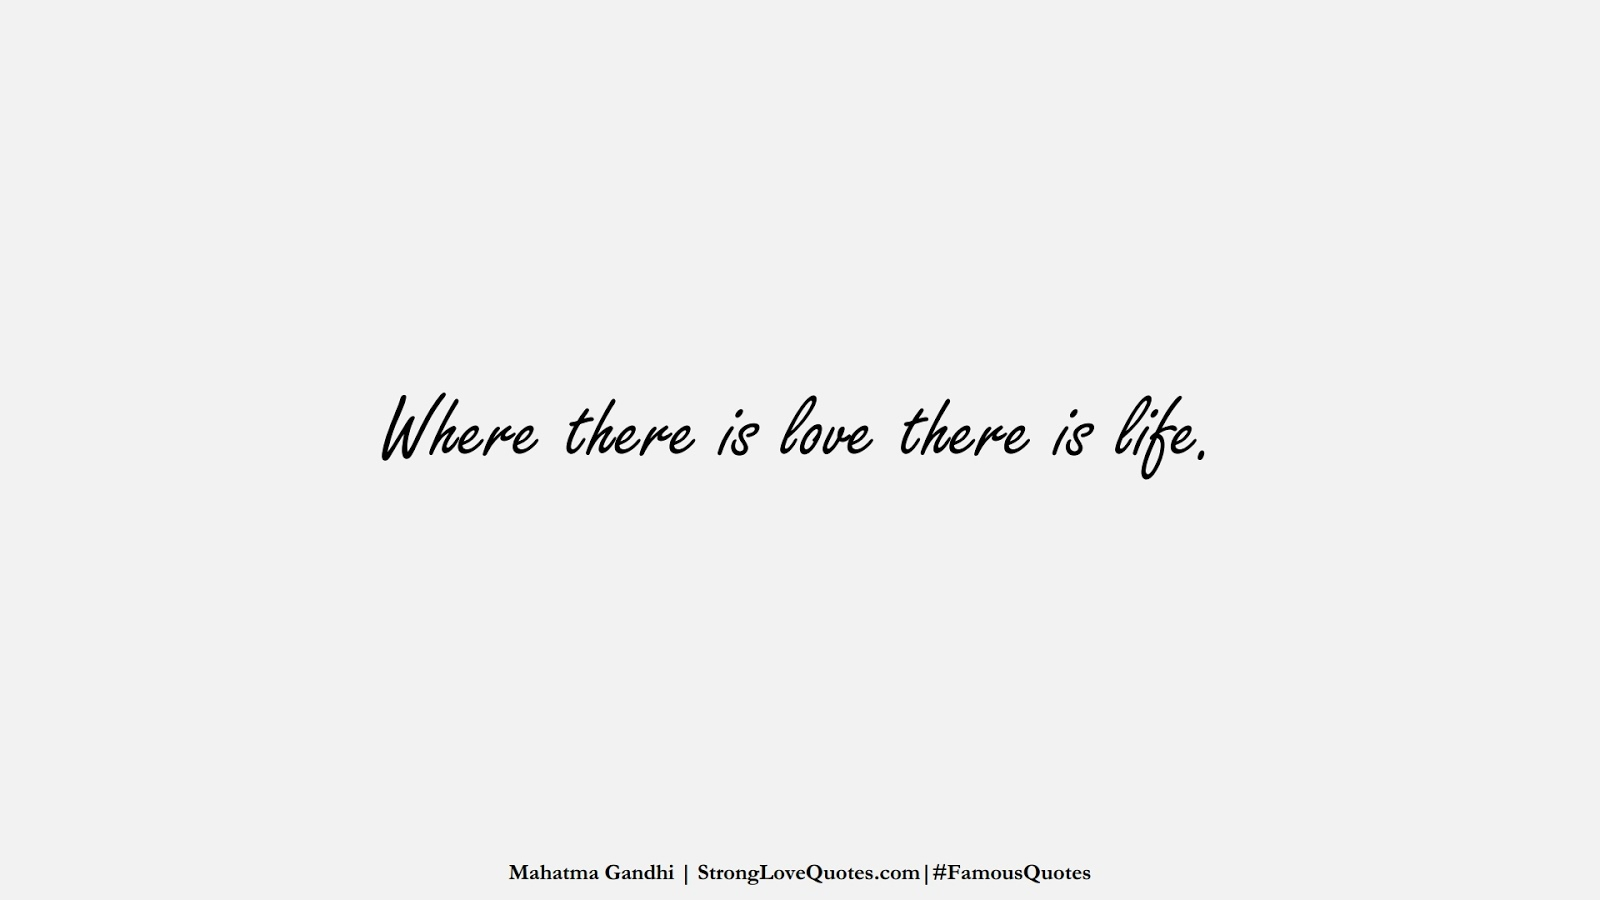 Where there is love there is life. (Mahatma Gandhi);  #FamousQuotes